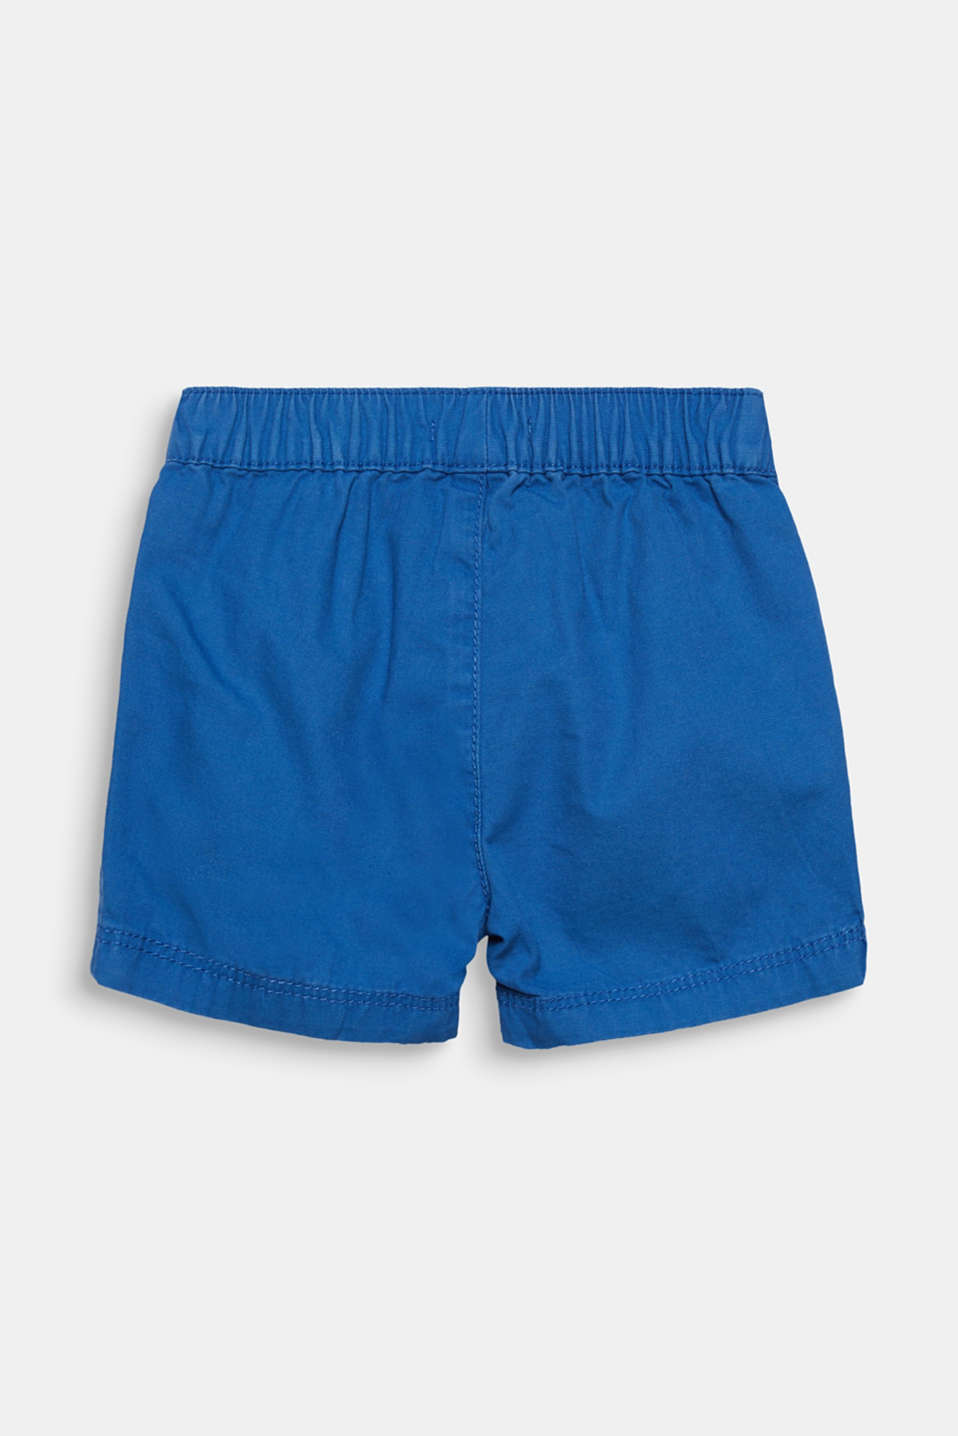 Woven shorts in 100% cotton, LCELECTRIC BLUE, detail image number 2